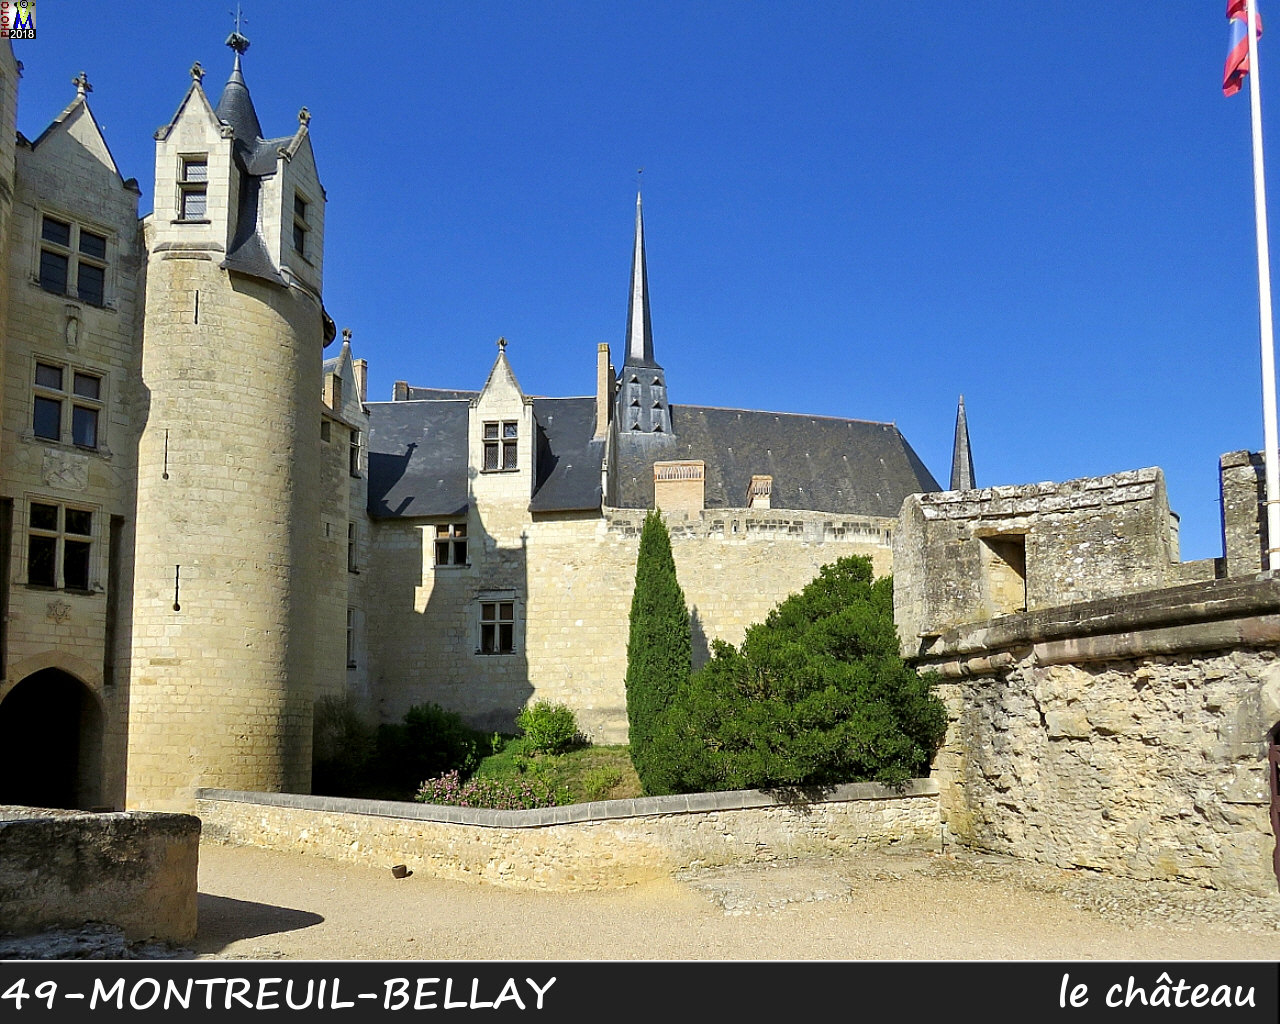 49MONTREUIL-BELLAY_chateau_1024.jpg